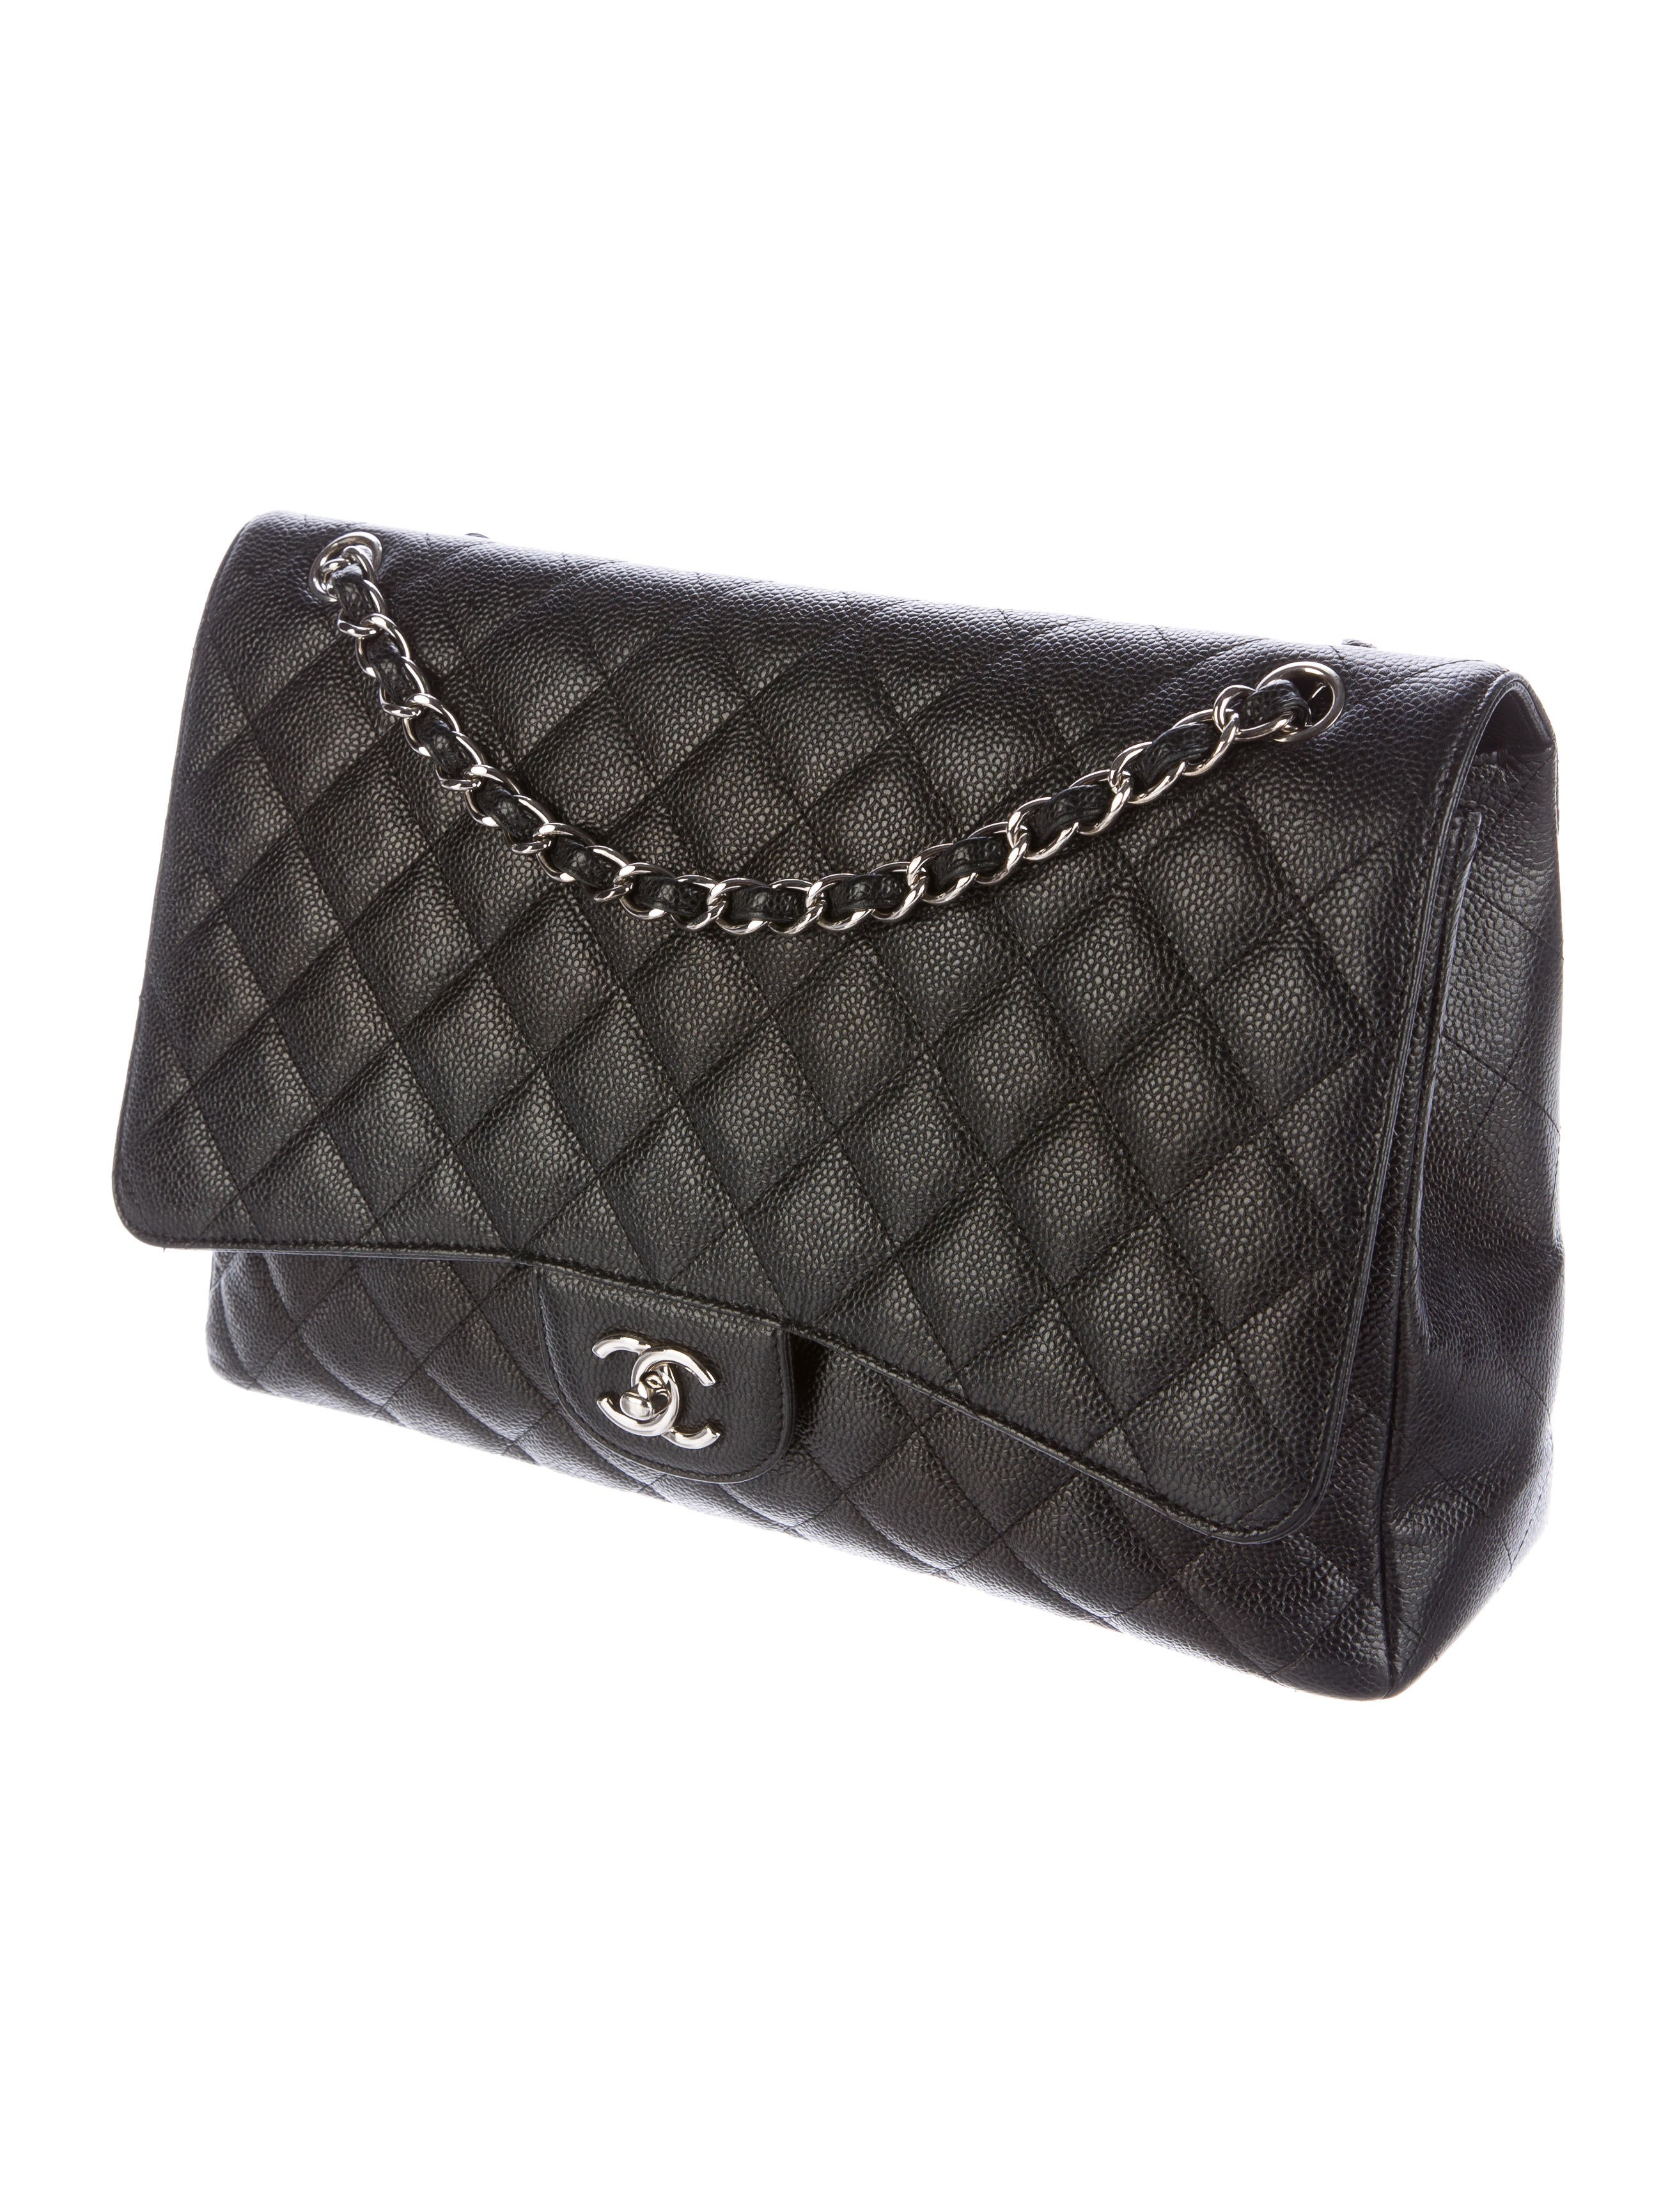 6df02c50ced2 Chanel Maxi Bags Not On Chanel Website. Chanel Classic Maxi Single Flap ...